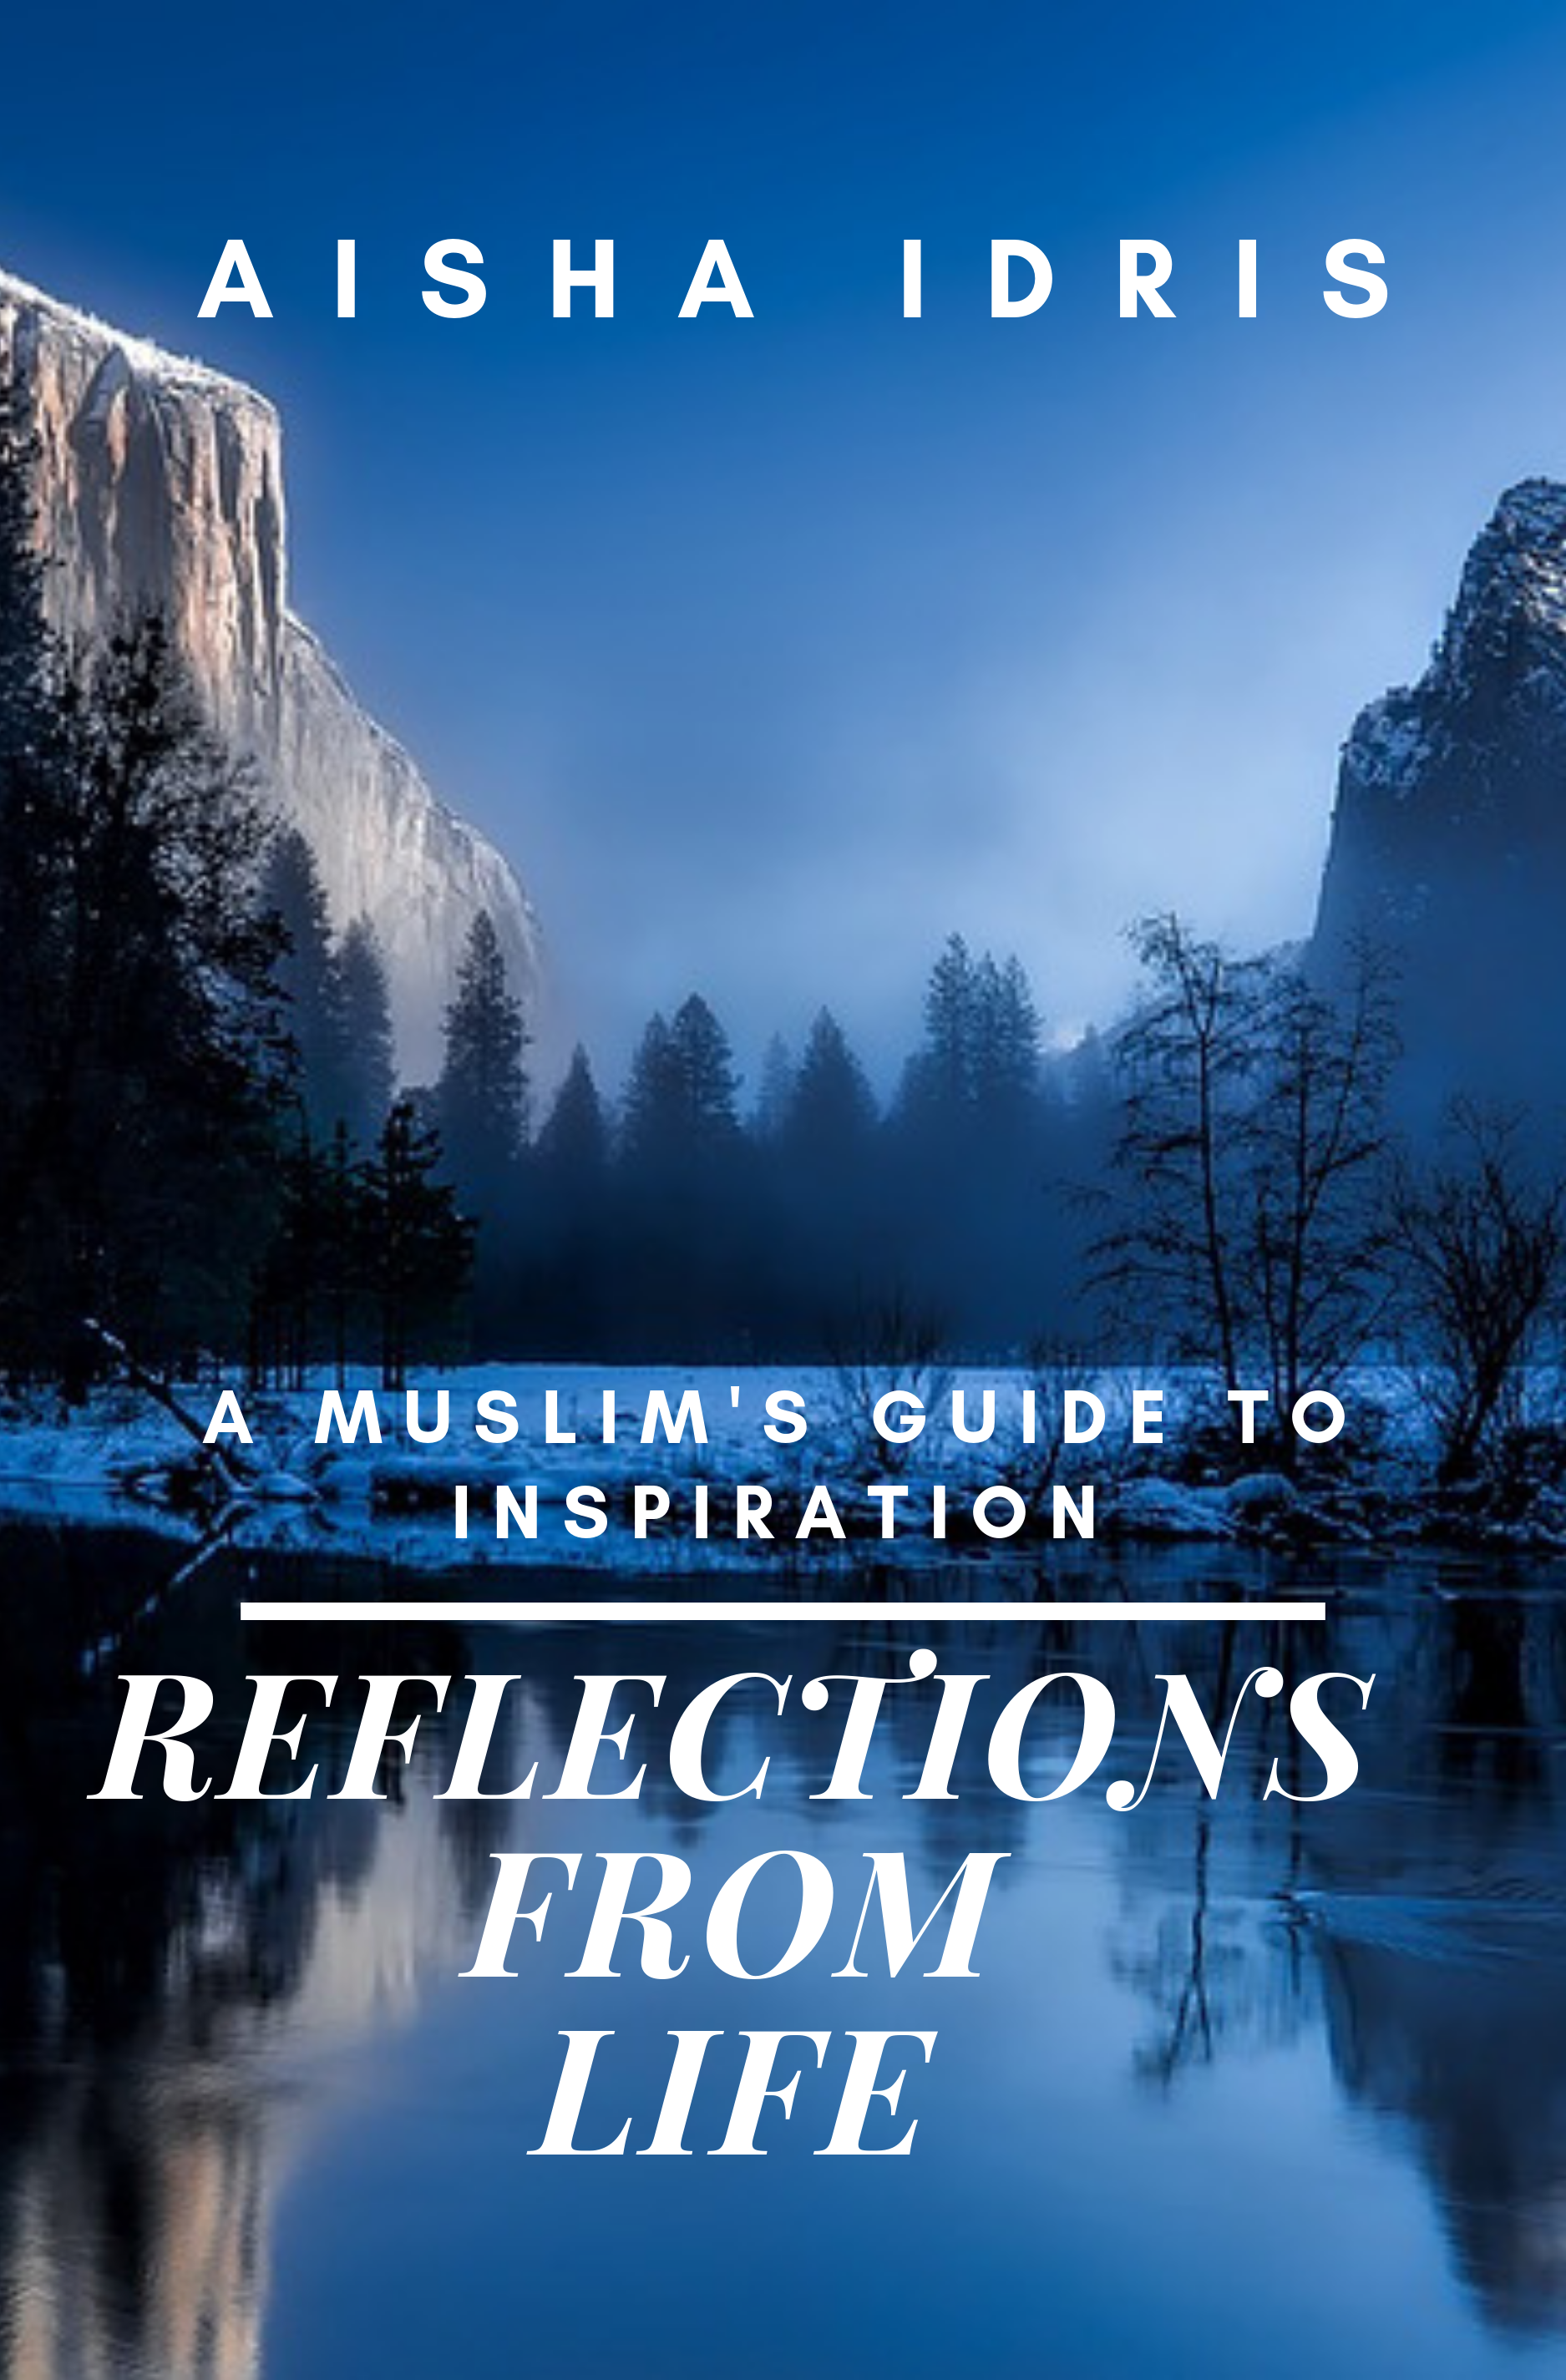 reflections from life: a muslim's guide to inspiration